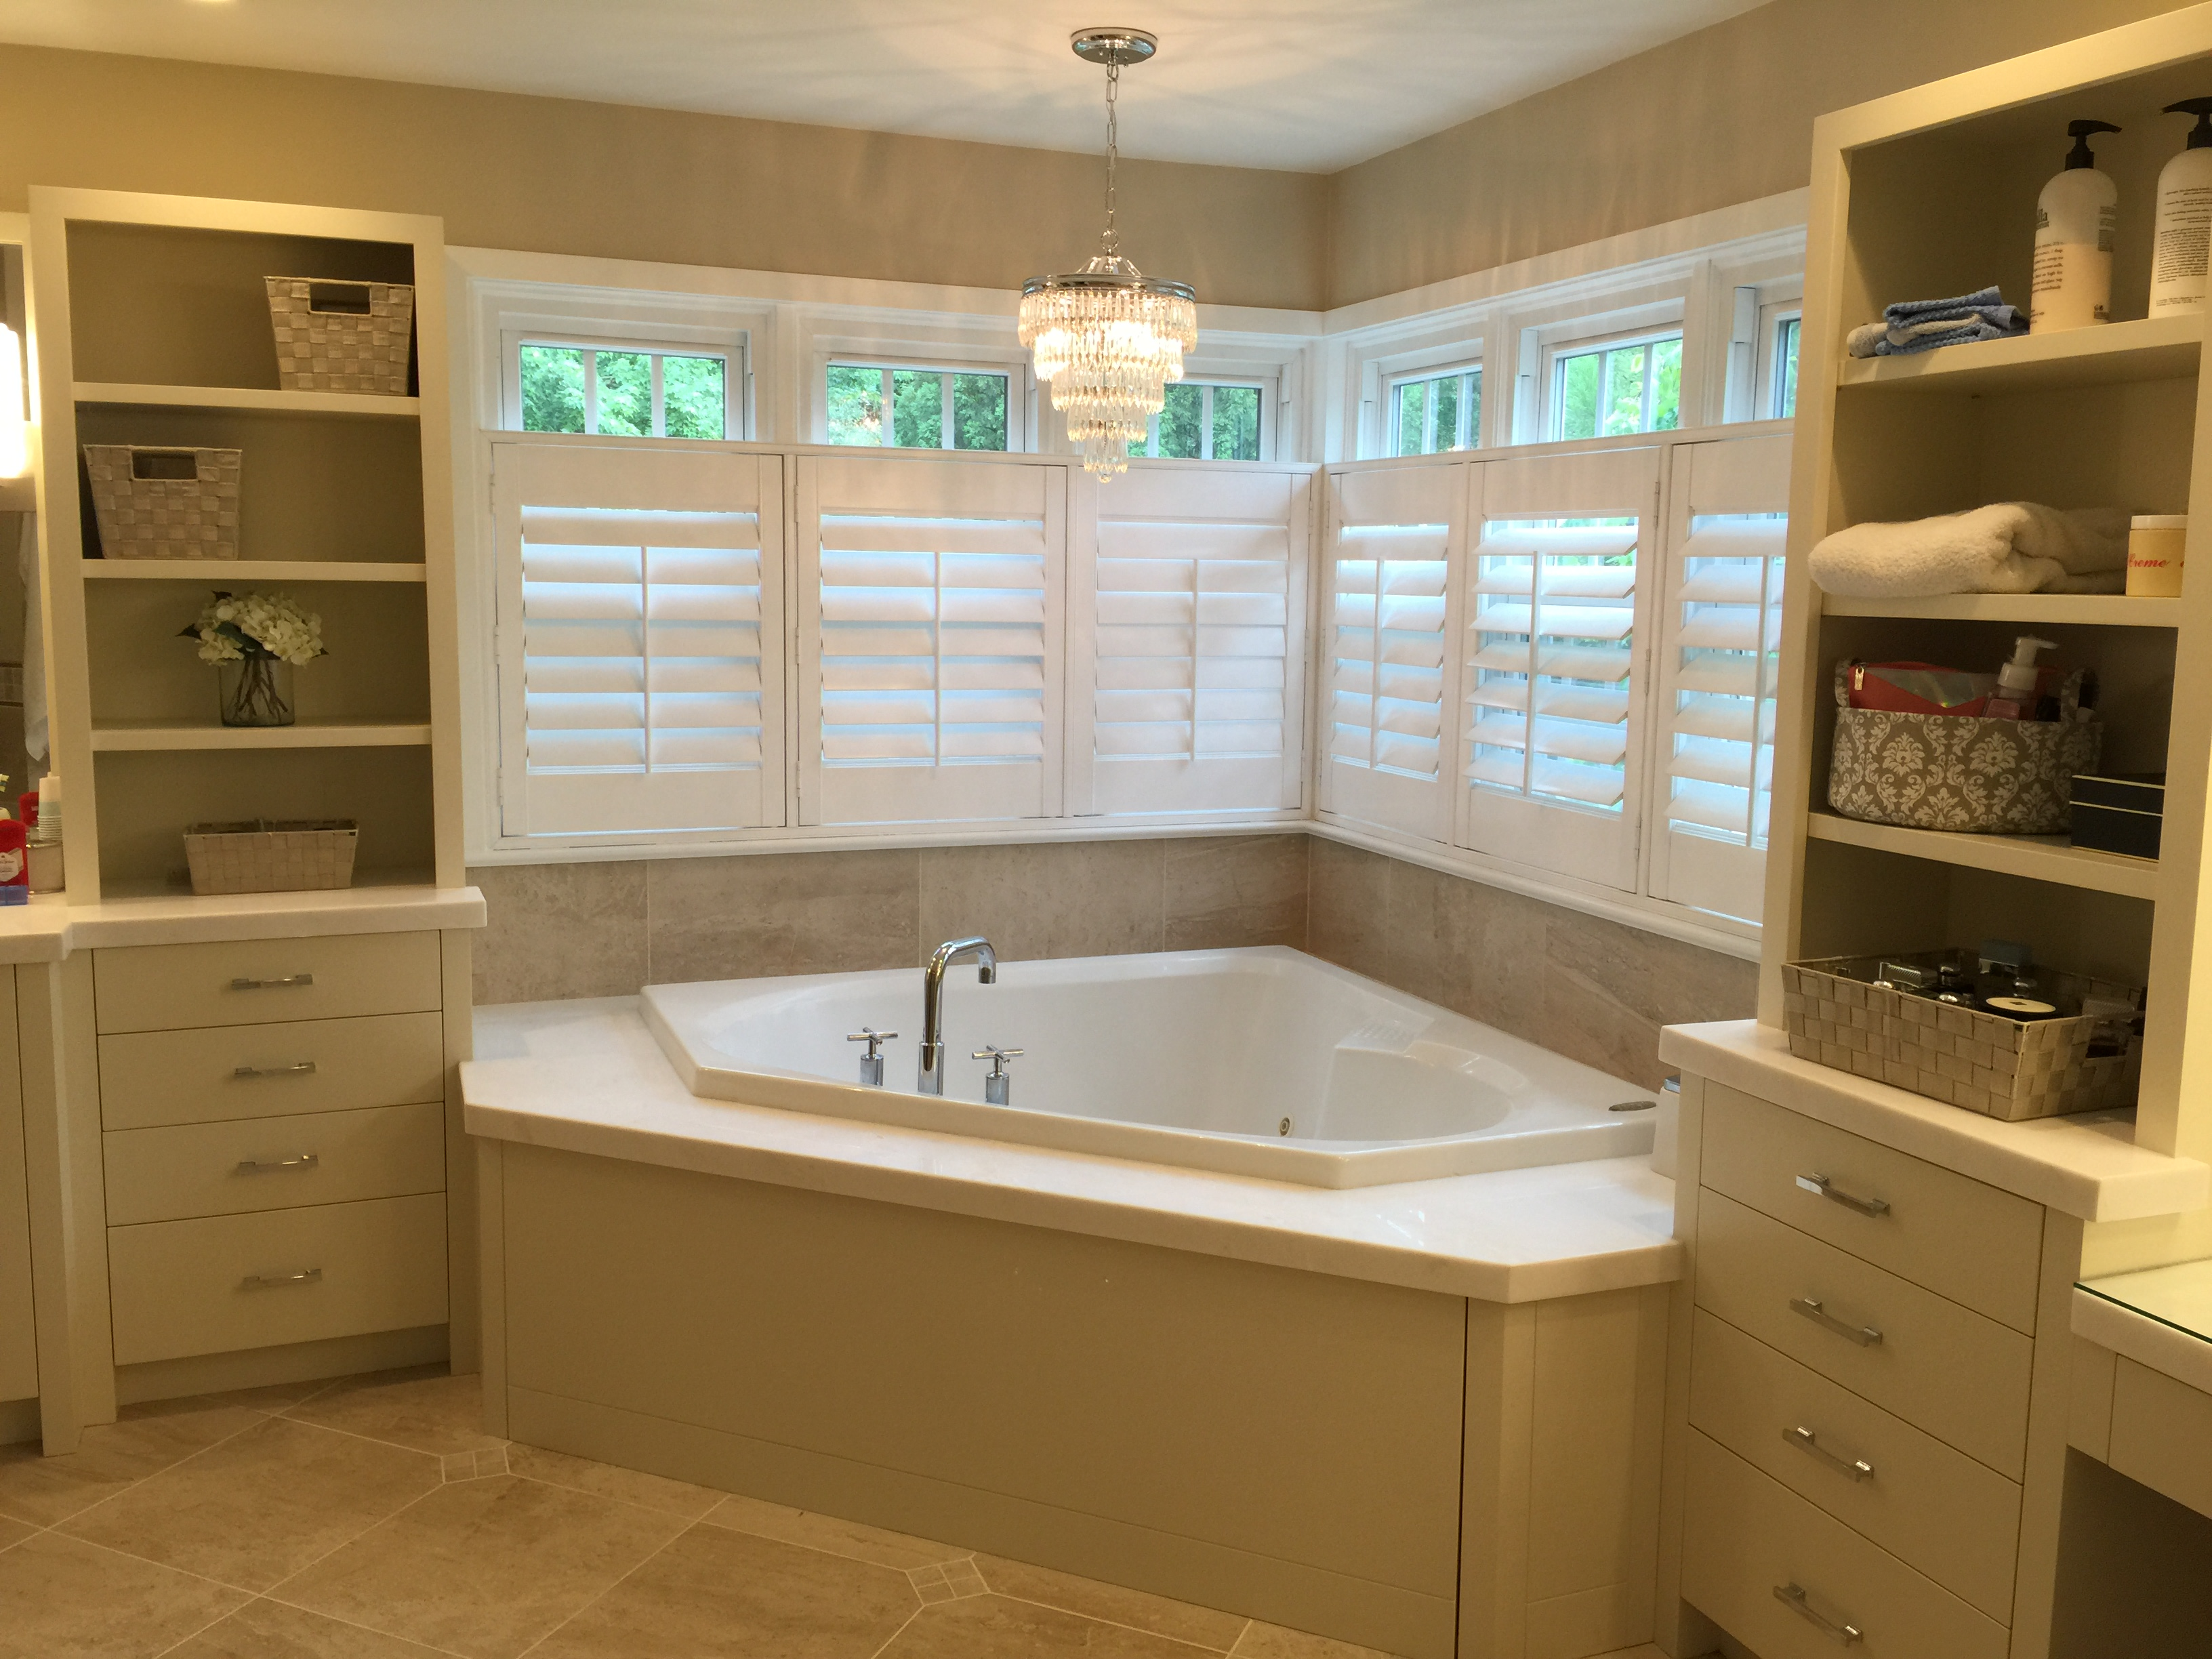 Recently Completed Total Master Bath Renovation Custom Cabinetry And Tub Panel 2 Thick White Marble Tub Deck And Vanity Tops Porcelain Tile Floor